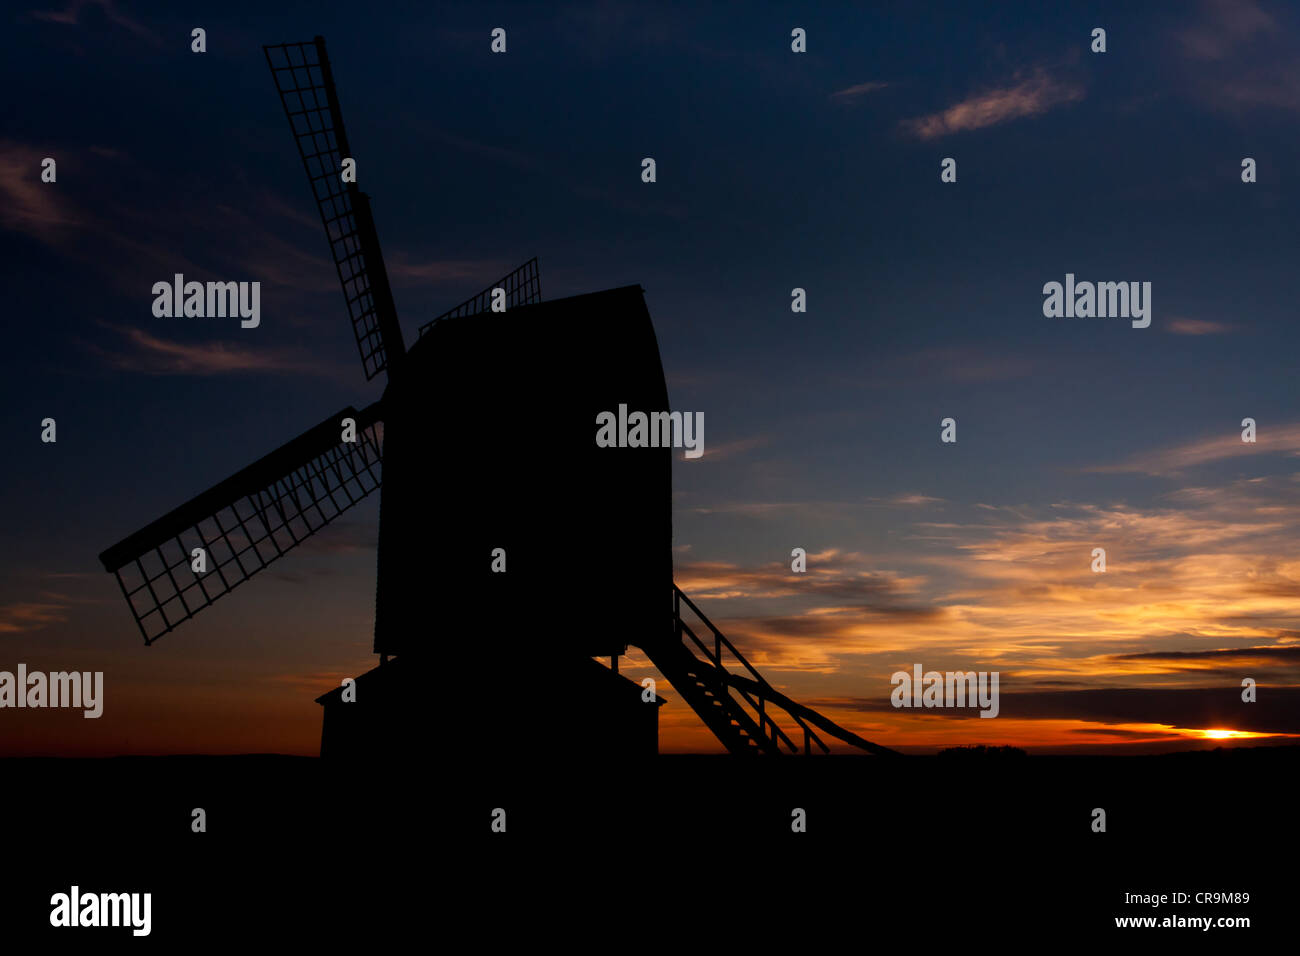 silhouette-view-of-brill-windmill-buckin